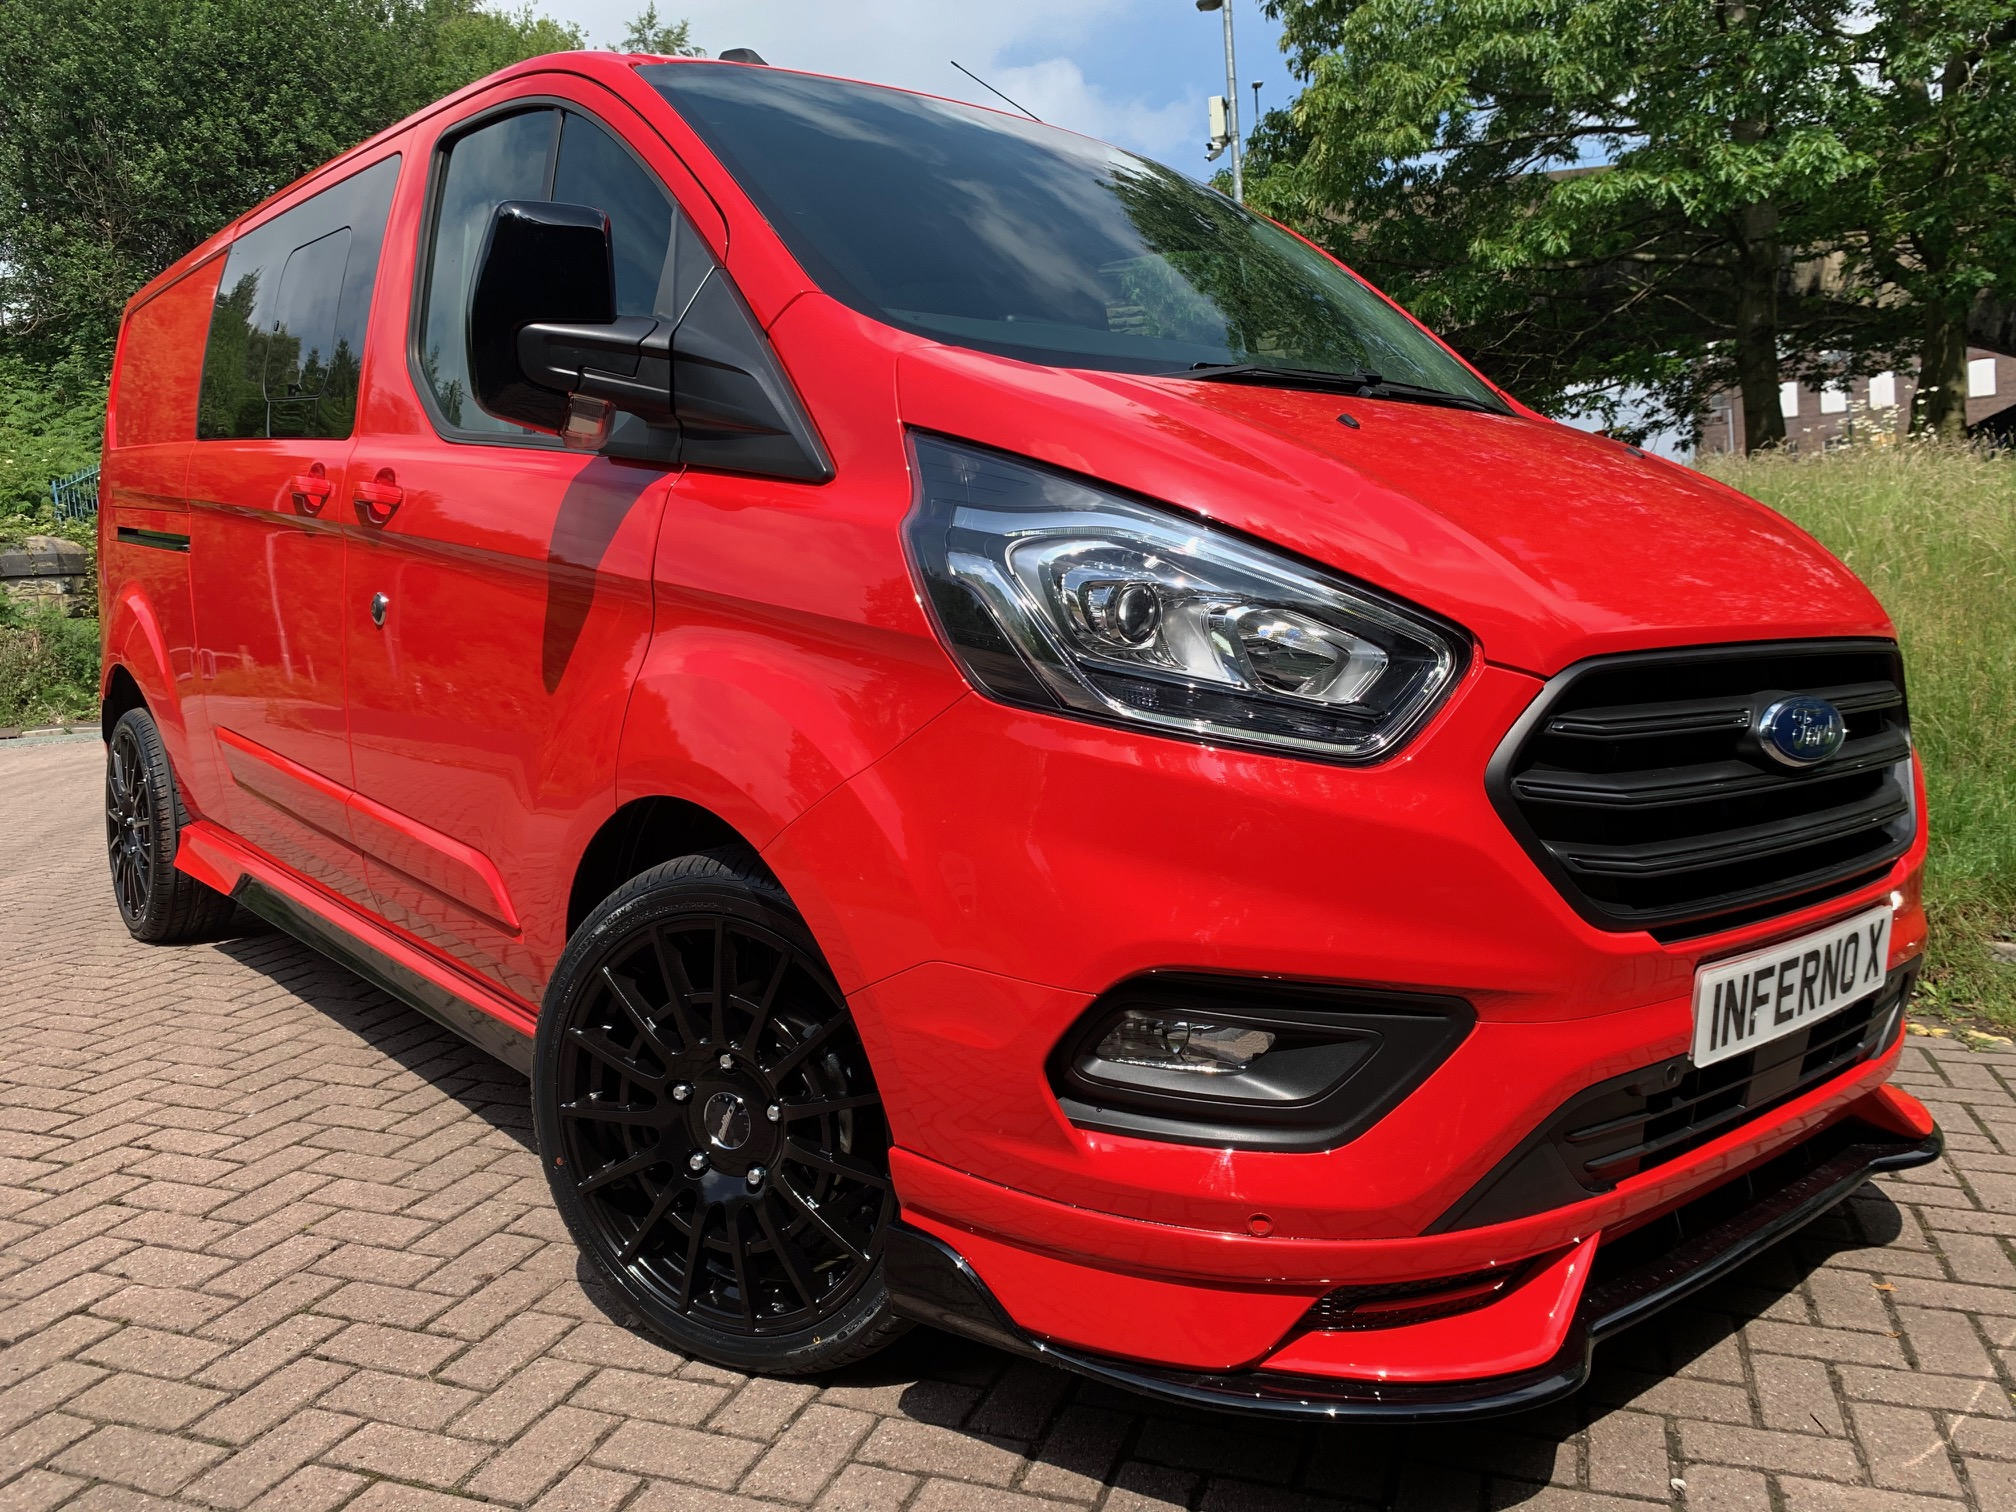 IMG_5695.jpg - Inferno X 320 L2 Double Cab In Van 2.0tdci 130 Limited